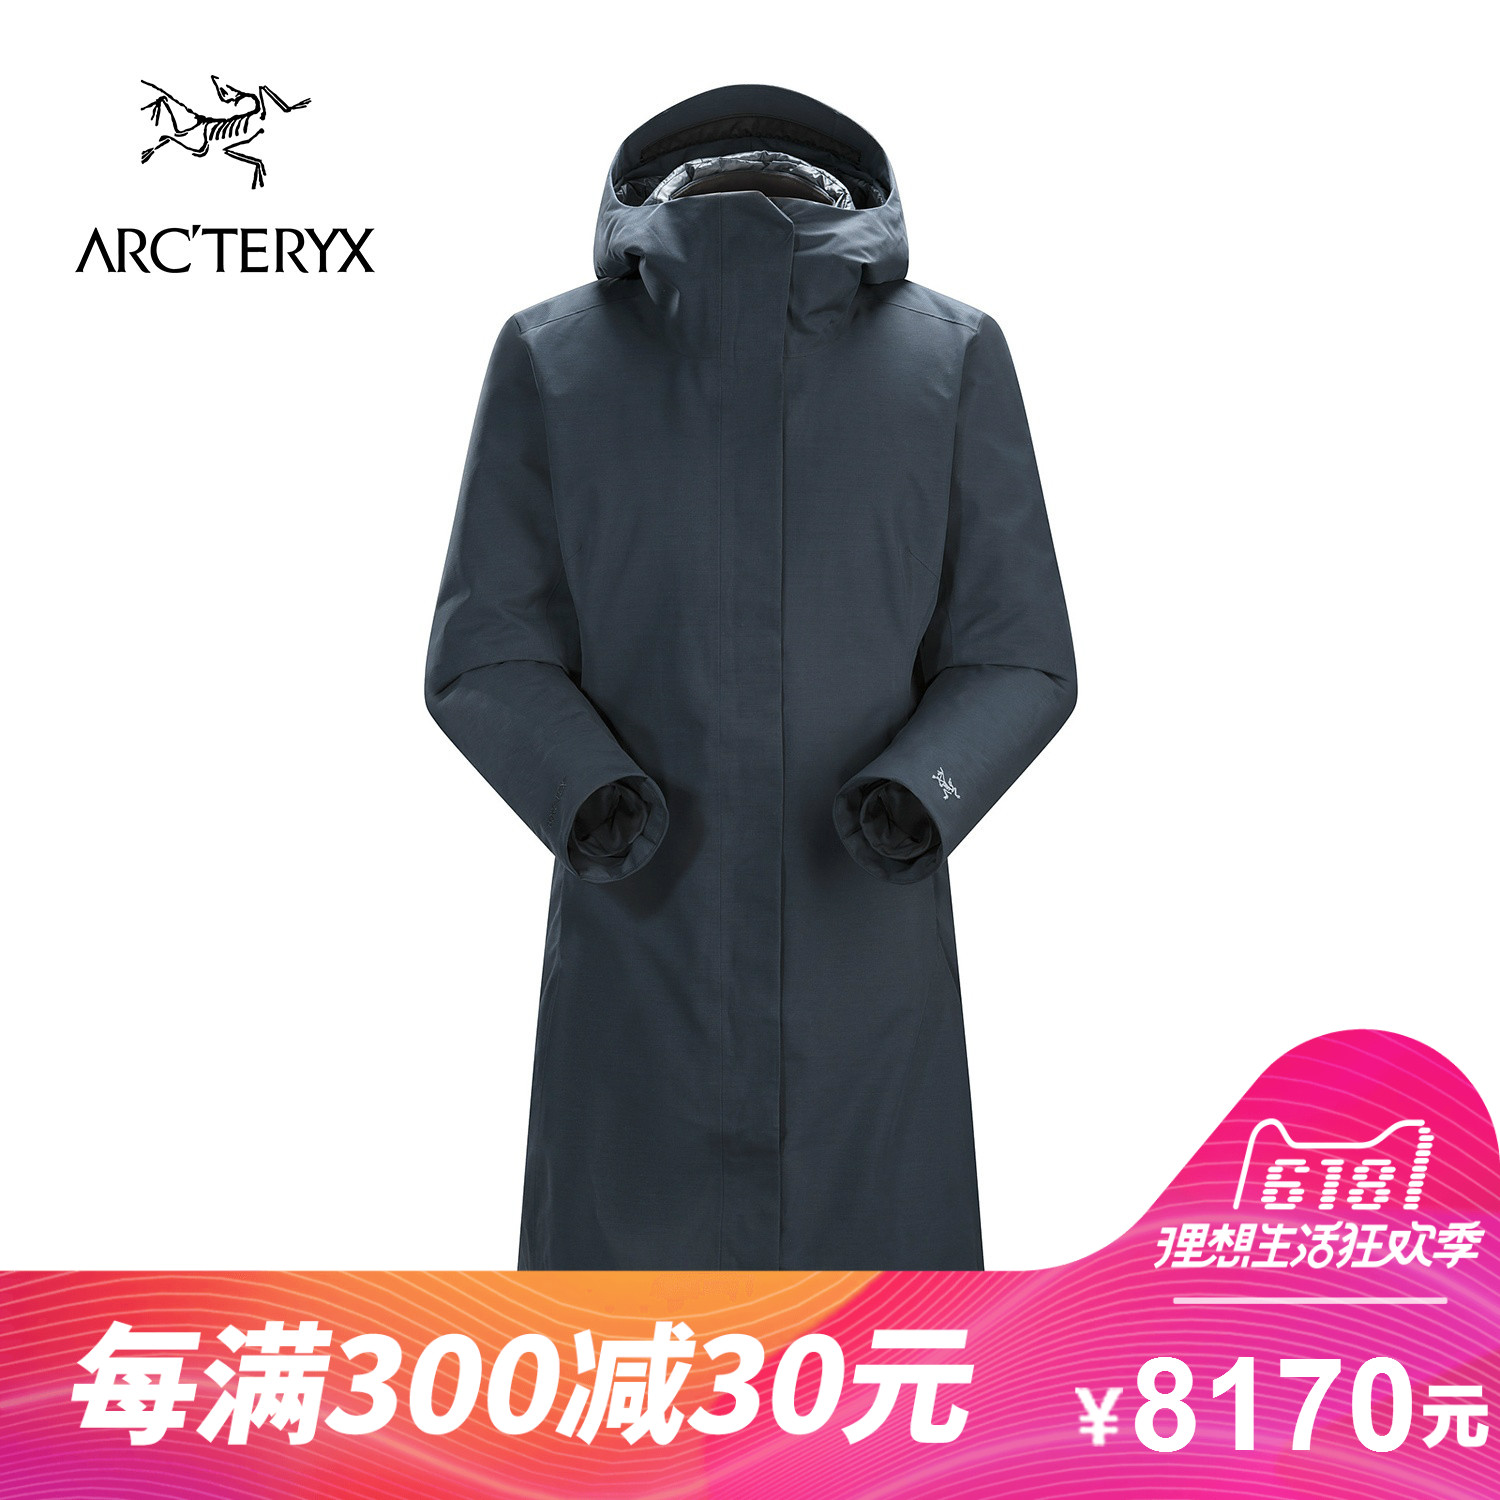 ARCTERYX / Archaeopteryx ladies outdoor 750 hooded long down jacket Patera Parka 16109